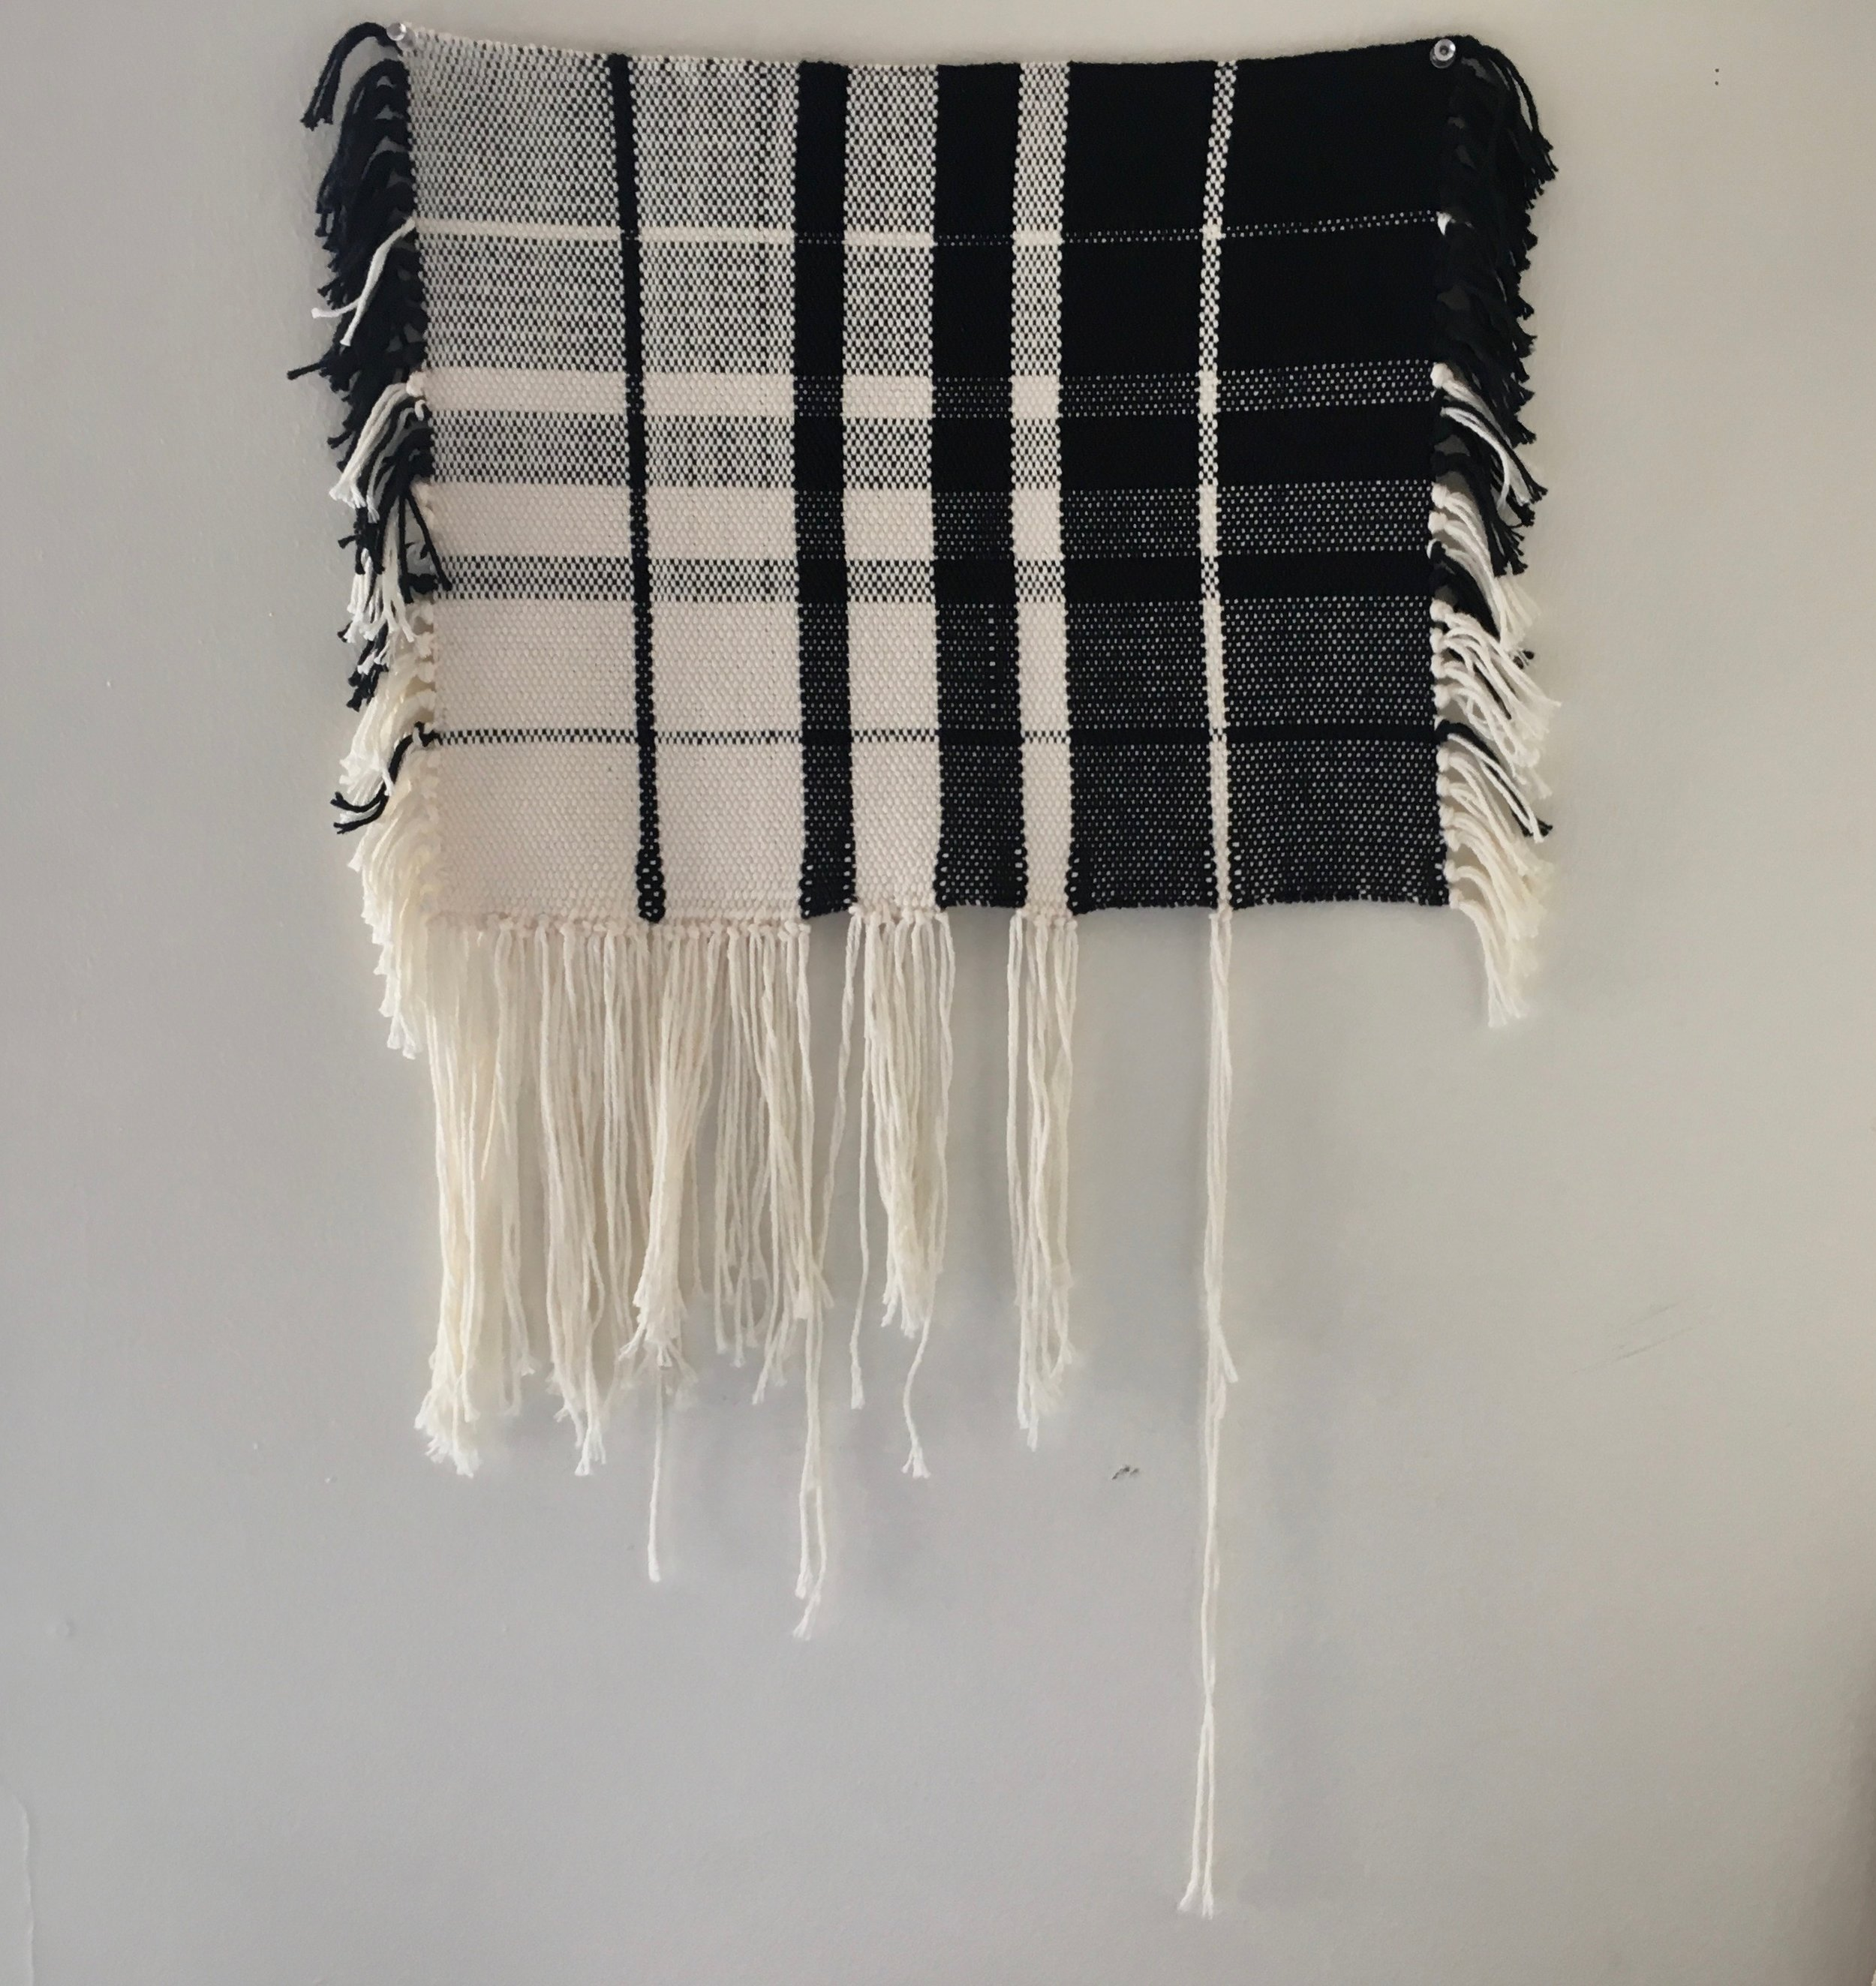 Weft Study #3, hanging weft threads